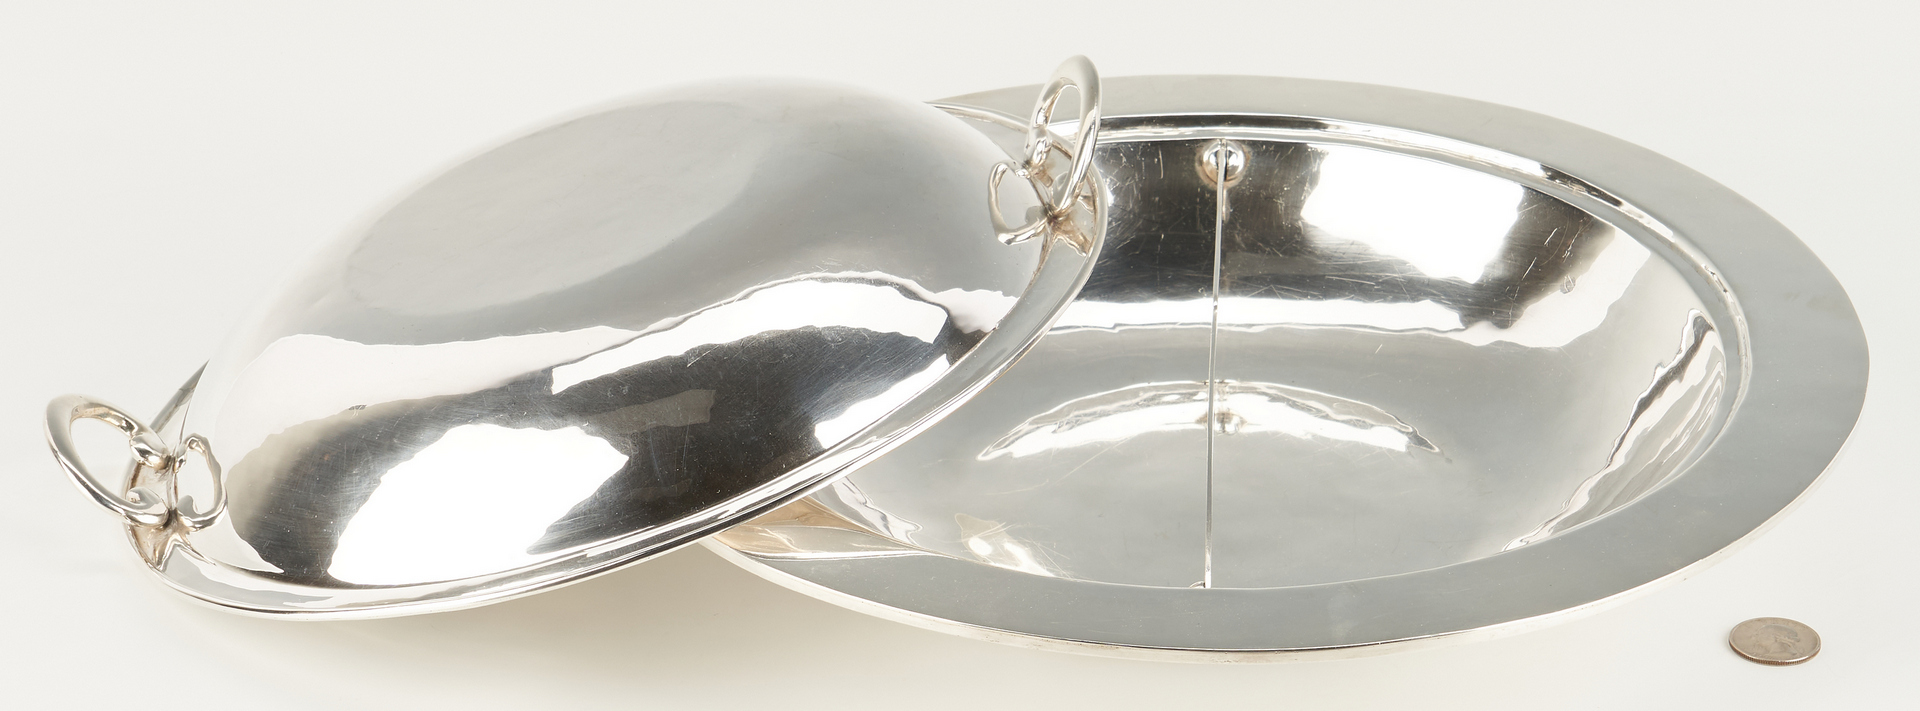 Lot 517: Mexican Sterling Silver Entree Dish, 58 oz